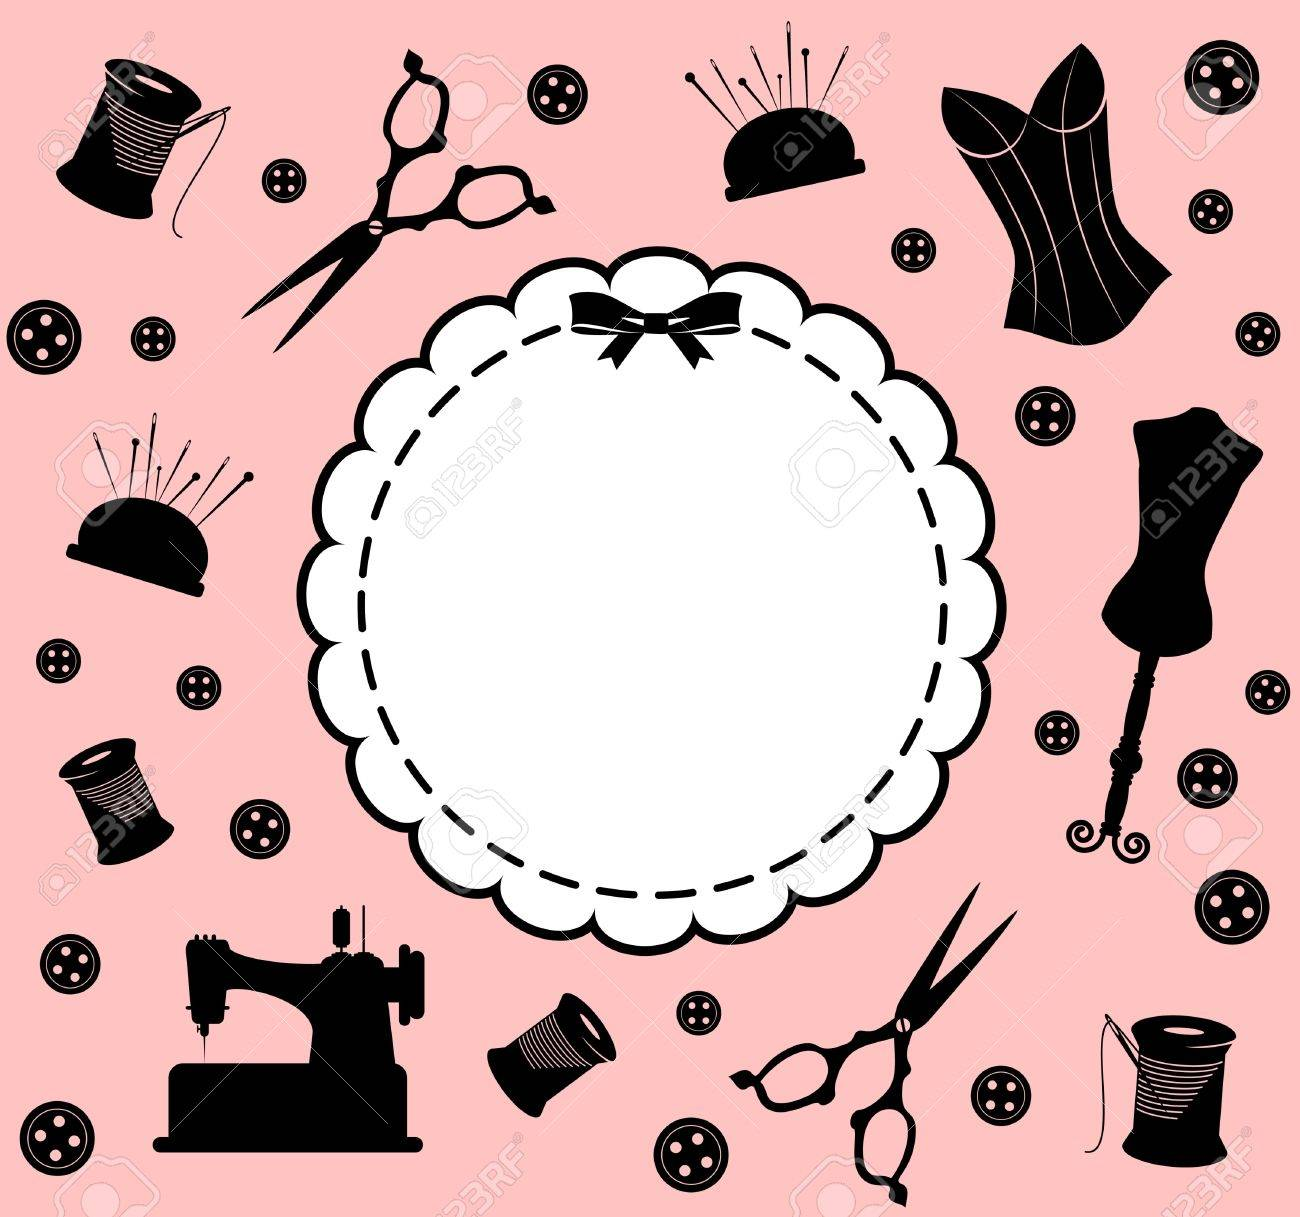 Vintage sewing related elements on the background Stock Photo - 16966715